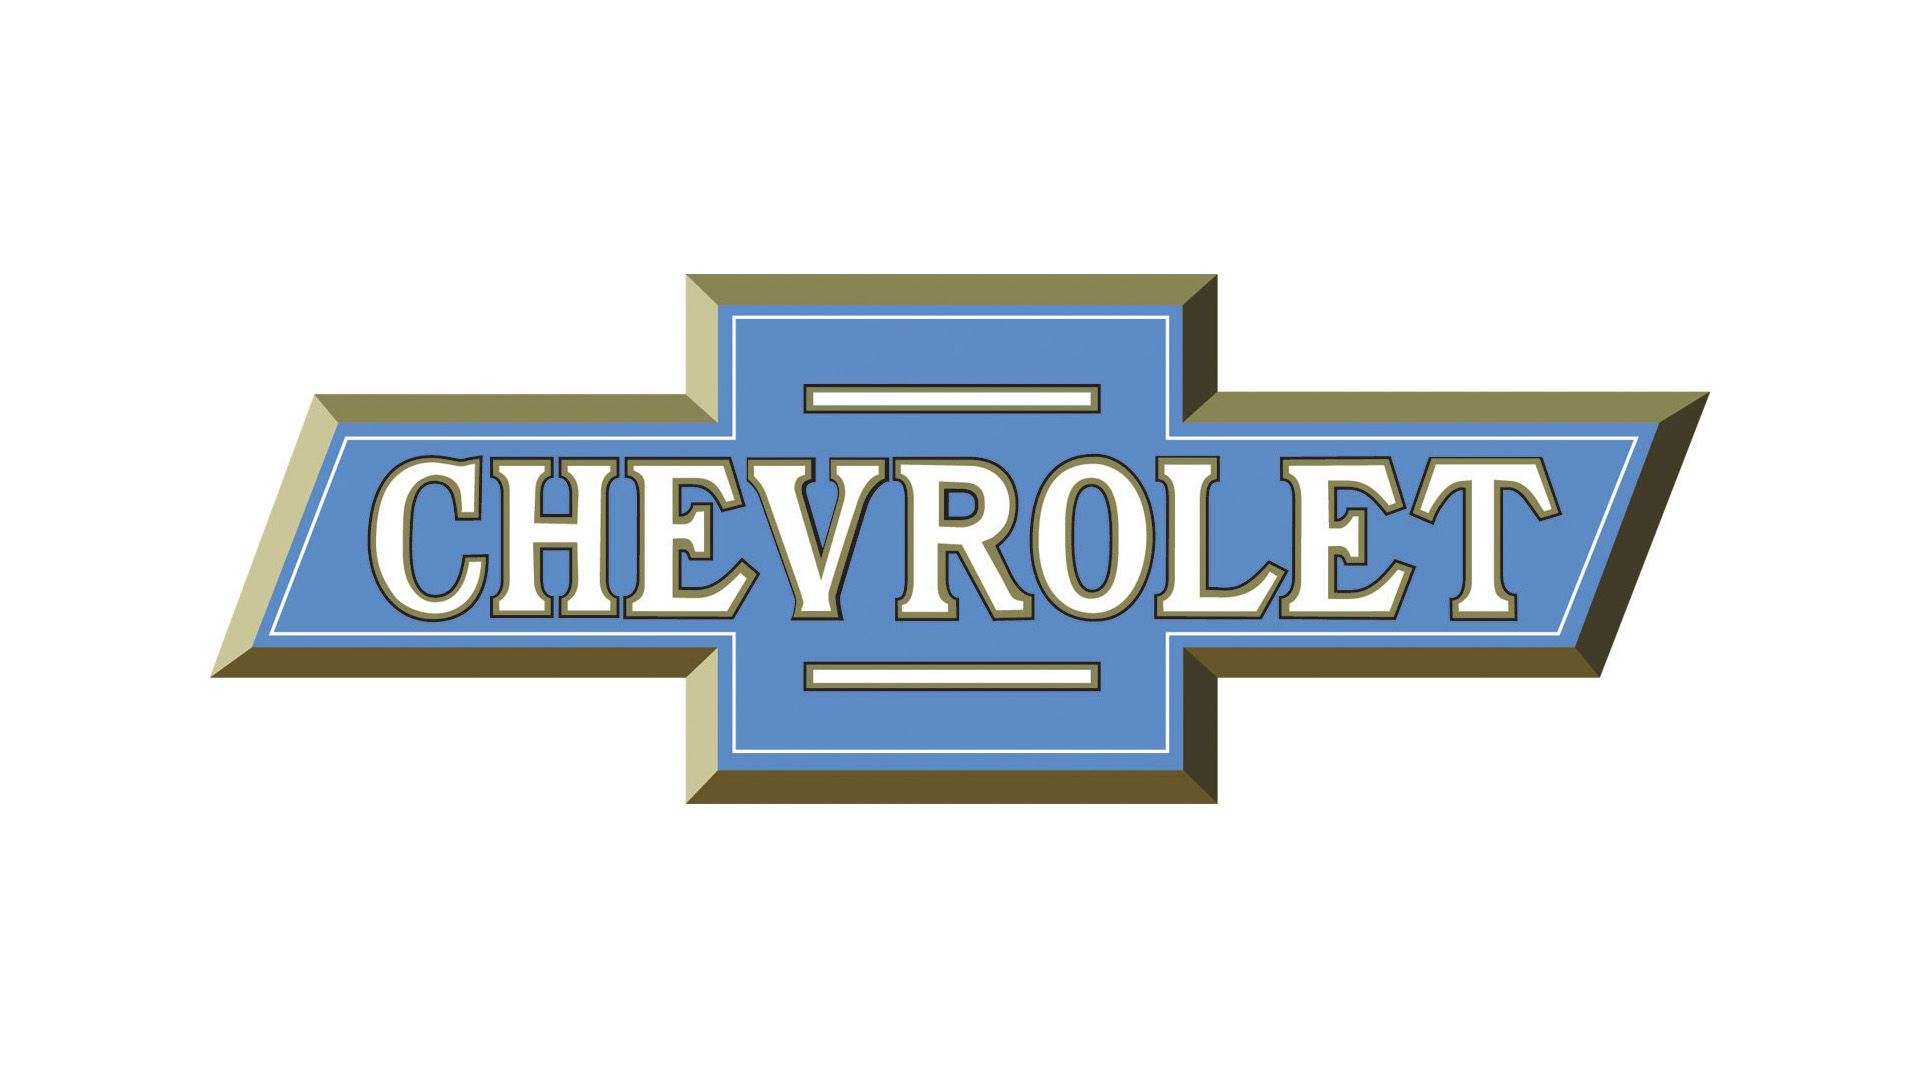 Chevrolet Logo Hd Png Meaning Information With Images